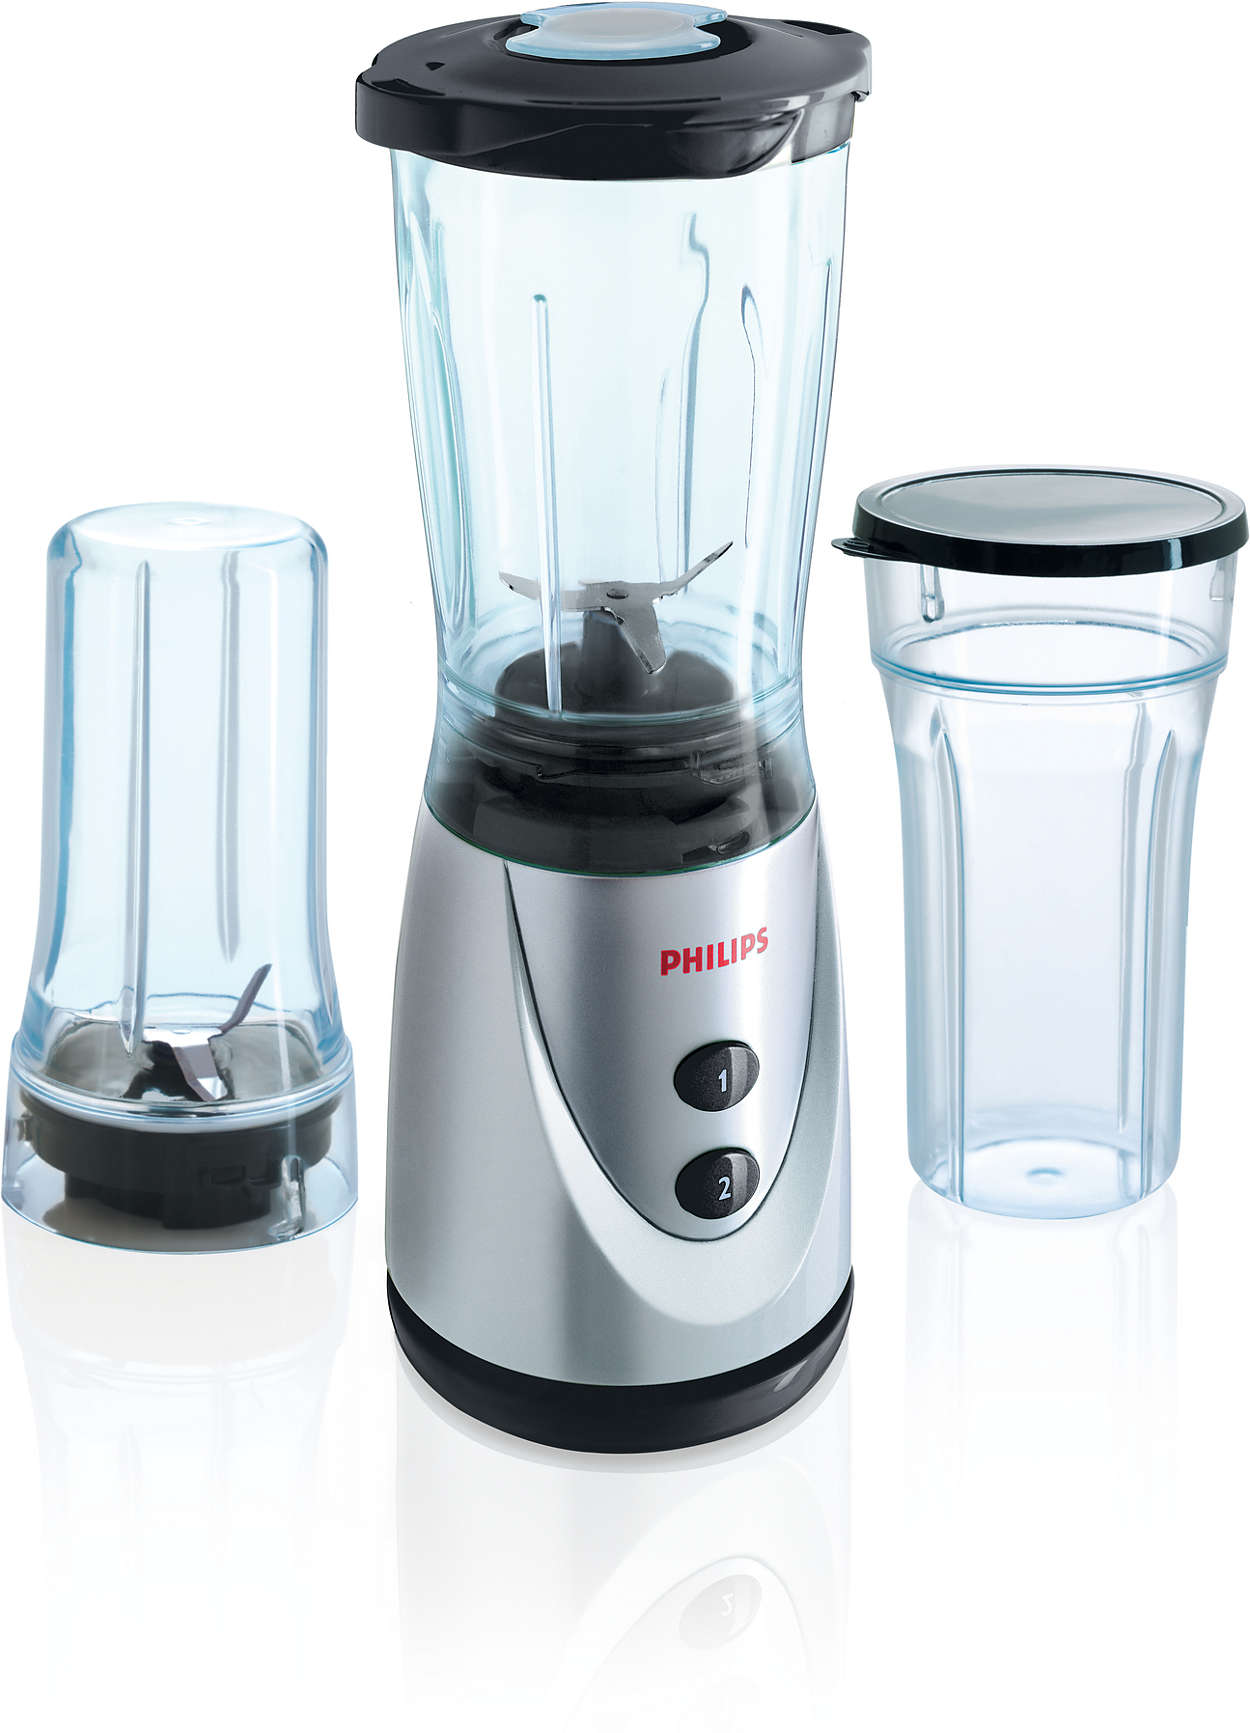 mini blender hr287050 philips